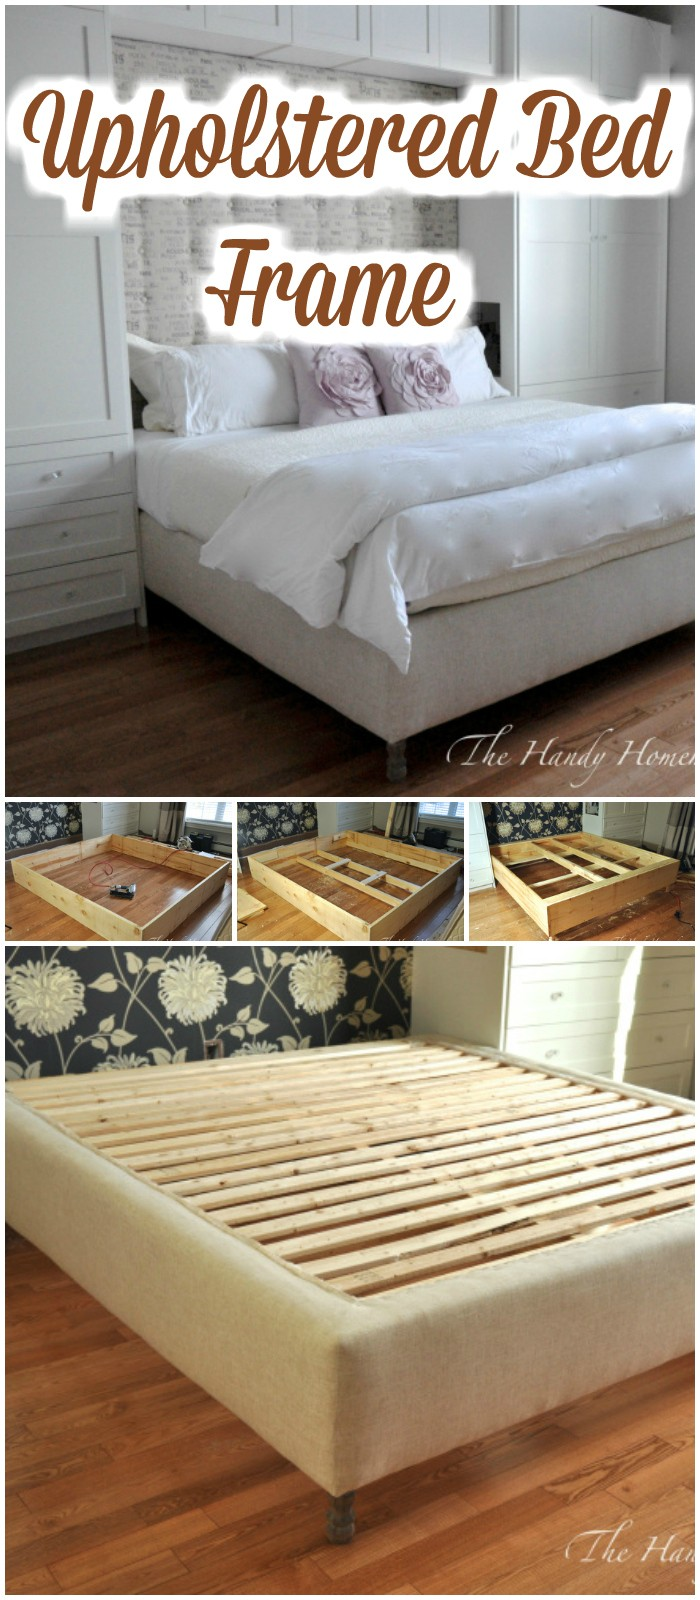 Upholstered Bed Frame - diy bed frame - DIY Bed Plans -diy bed